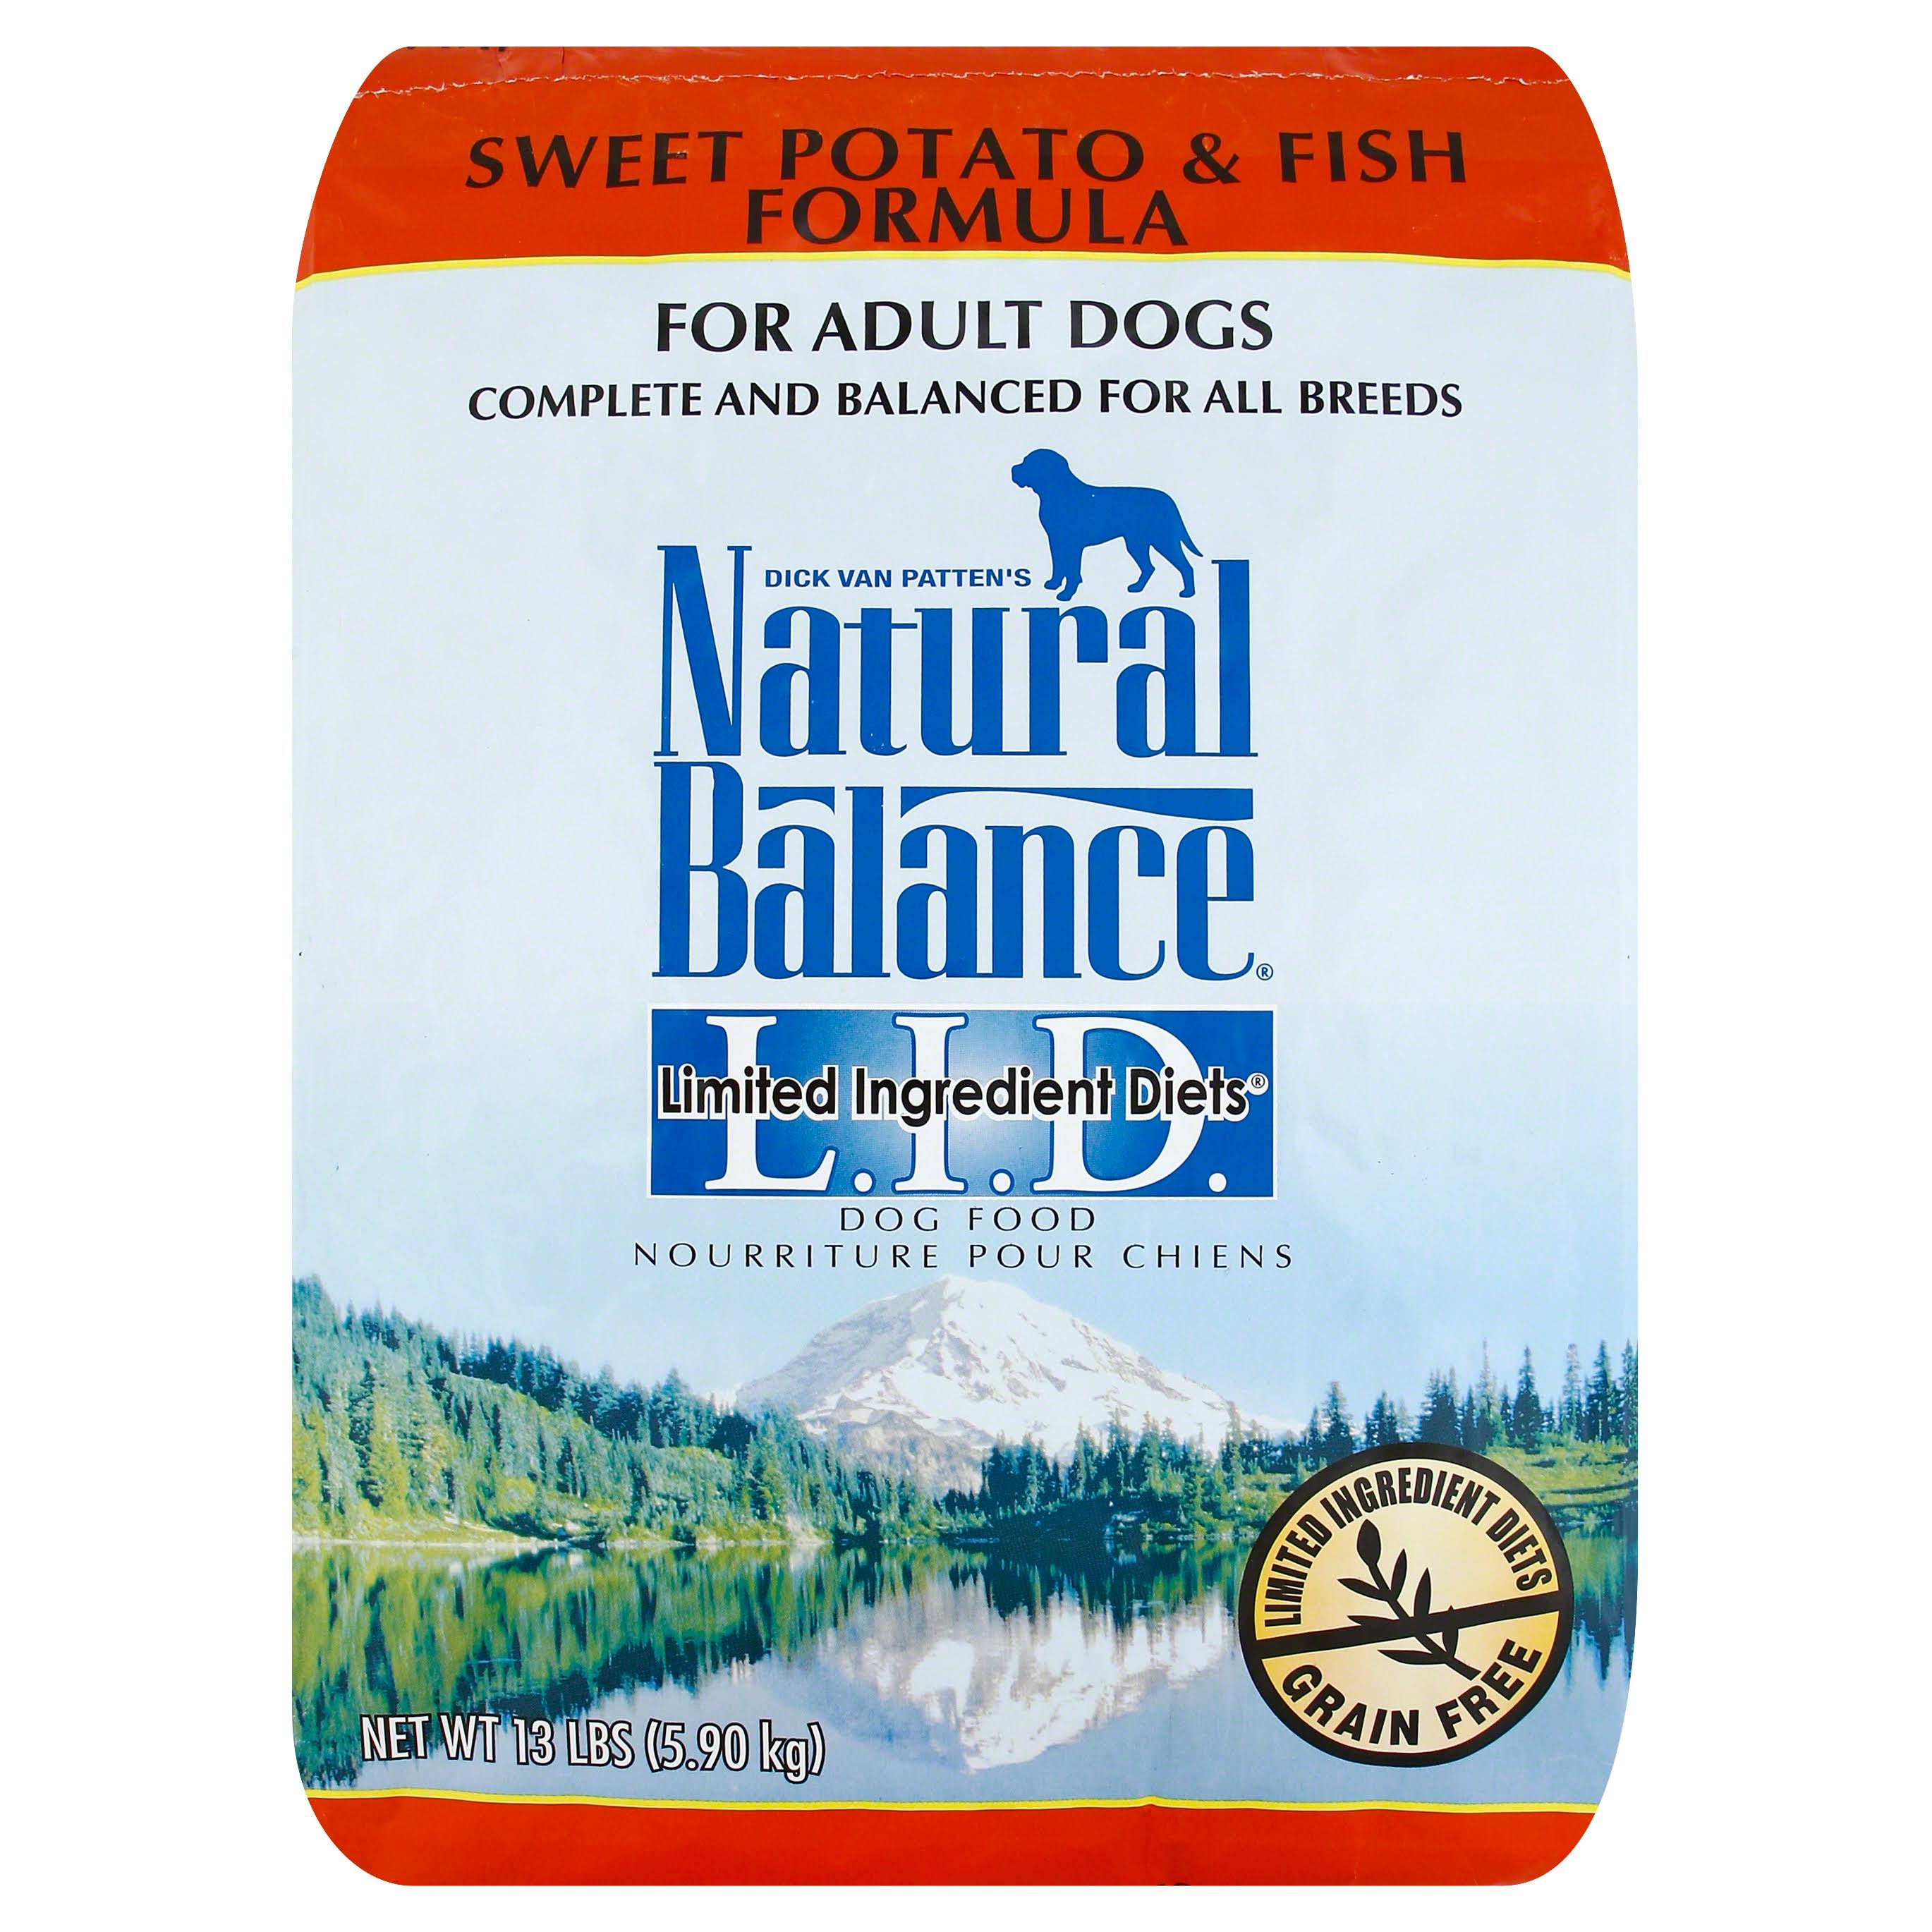 Dick Van Patten's Natural Balance Formula Dry Dog Food - Sweet Potato & Fish